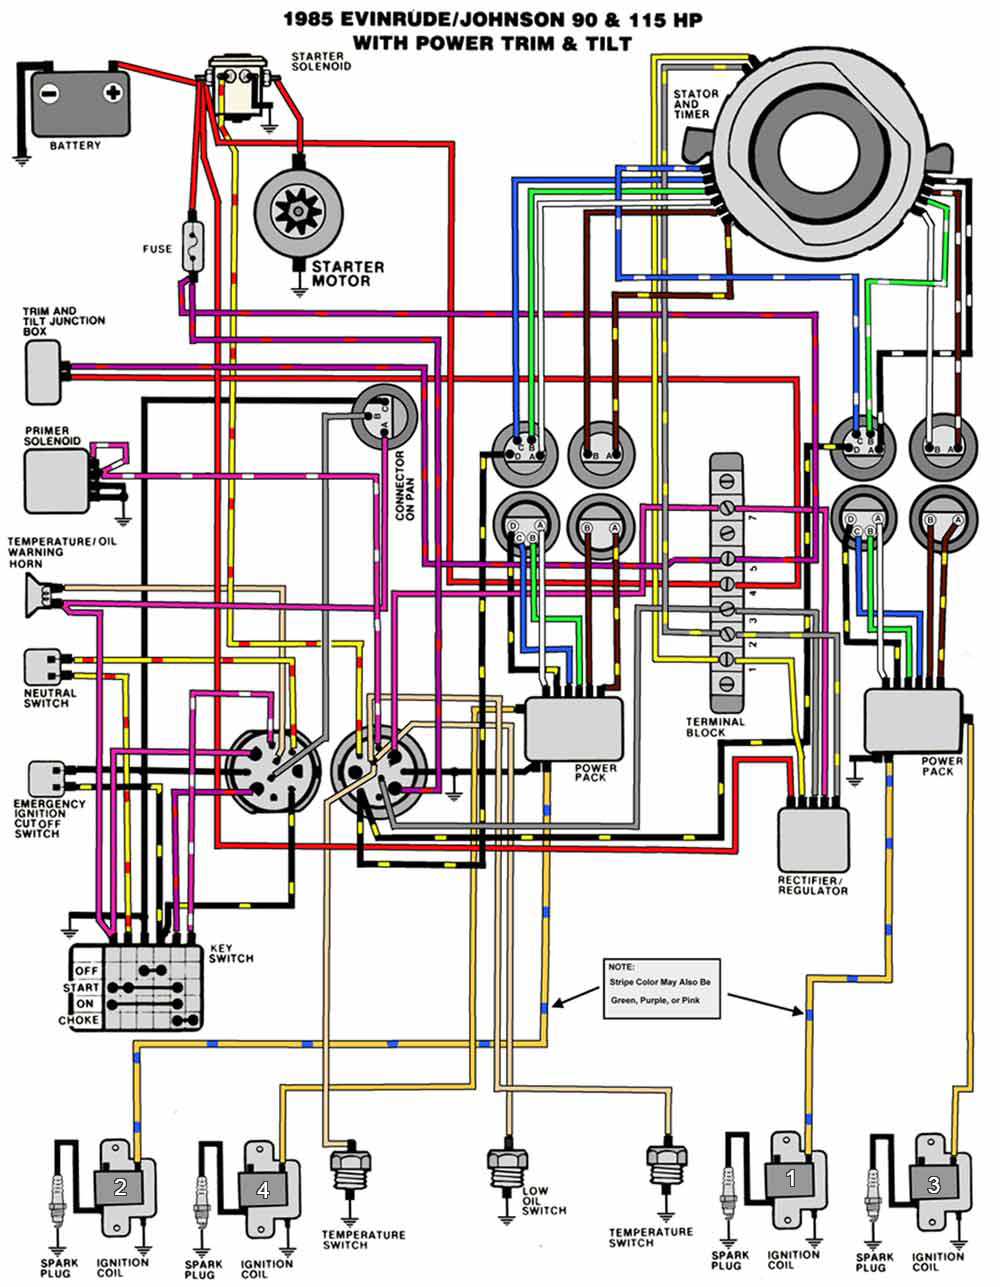 1985_90_115TnT mastertech marine evinrude johnson outboard wiring diagrams mercury 2 stroke outboard wiring diagram at crackthecode.co